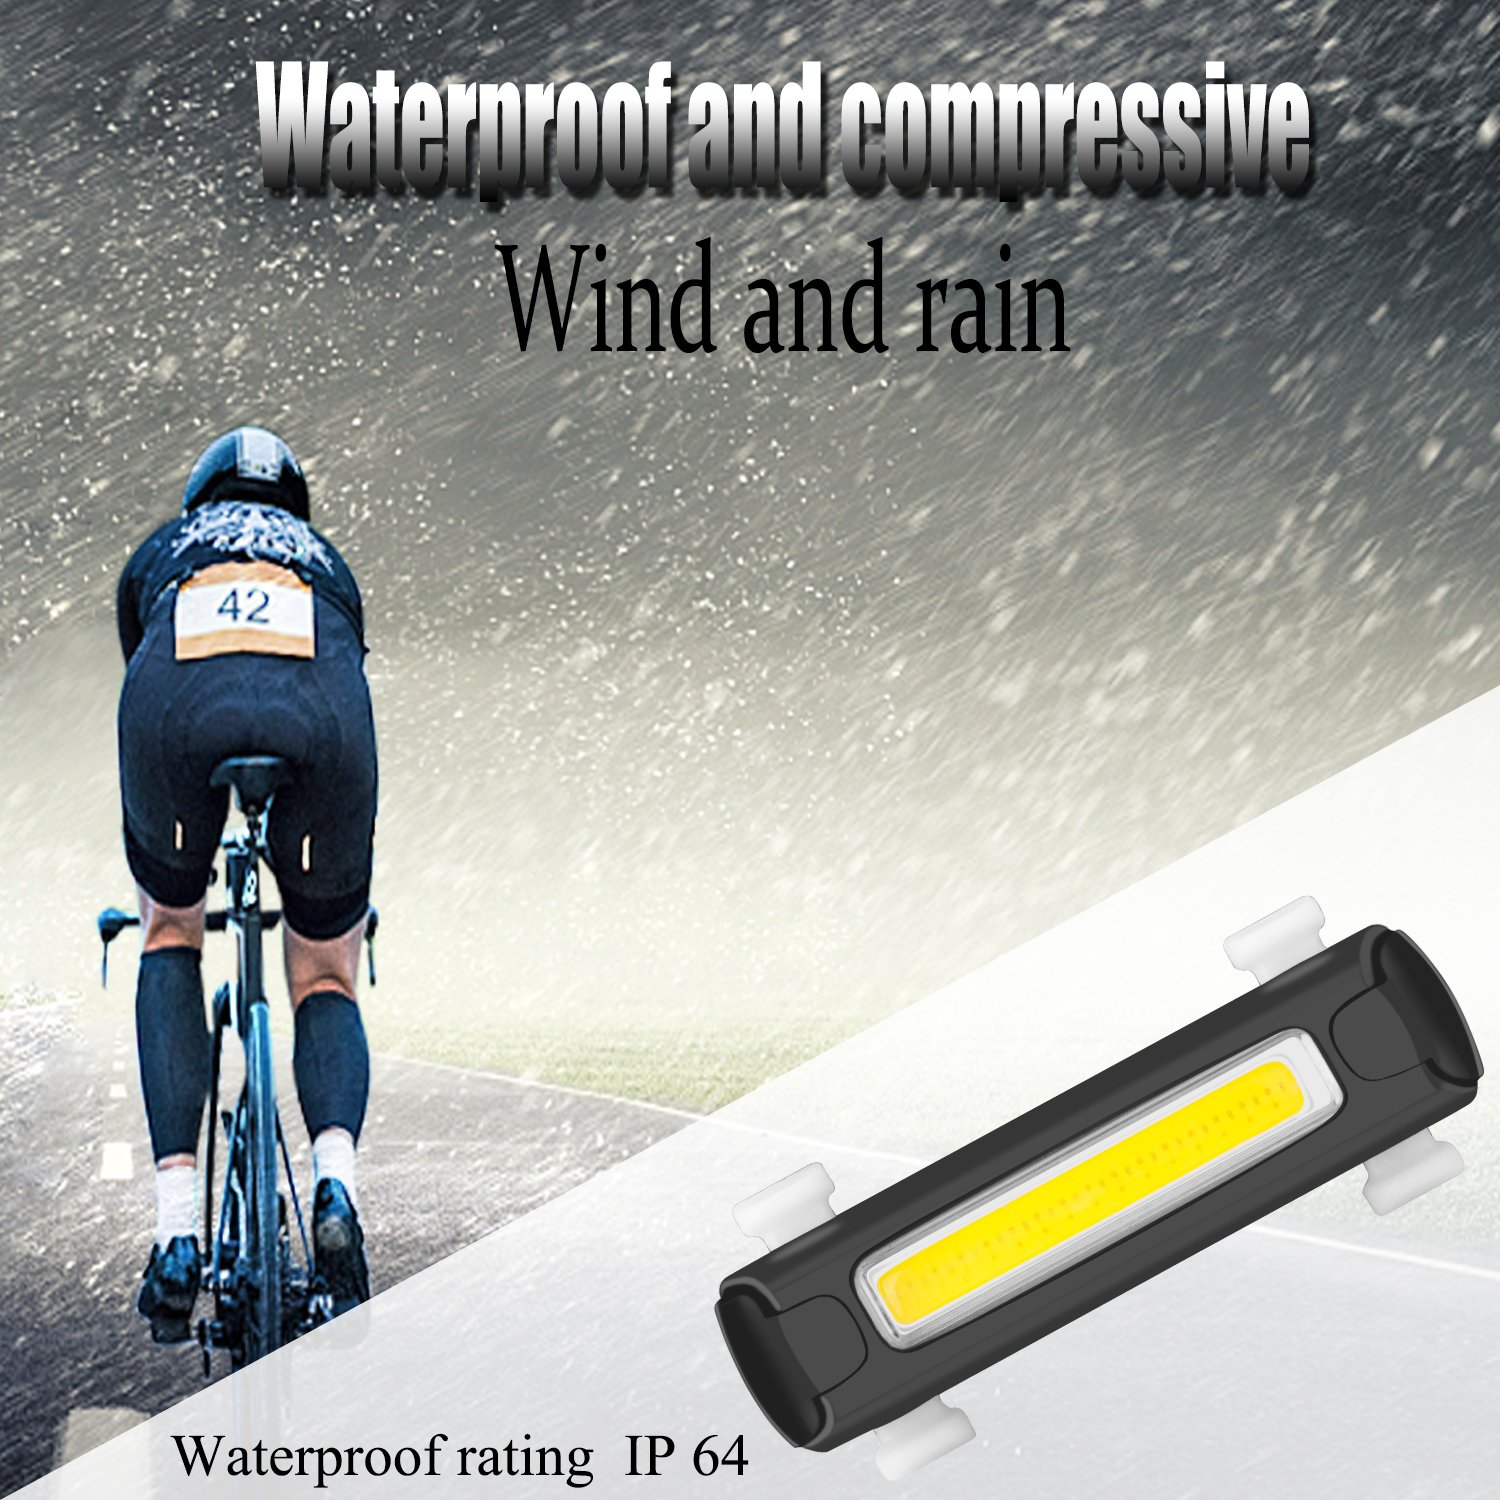 Red or White 16 LEDs 4 Modes Fits On Any Road Bikes 1 Pack Helmets Helmets USB Rechargeable Waterproof Bicycle Light Cycling Safety Flashlight Venoro Ultra Bright Bike Light Set Front and Rear